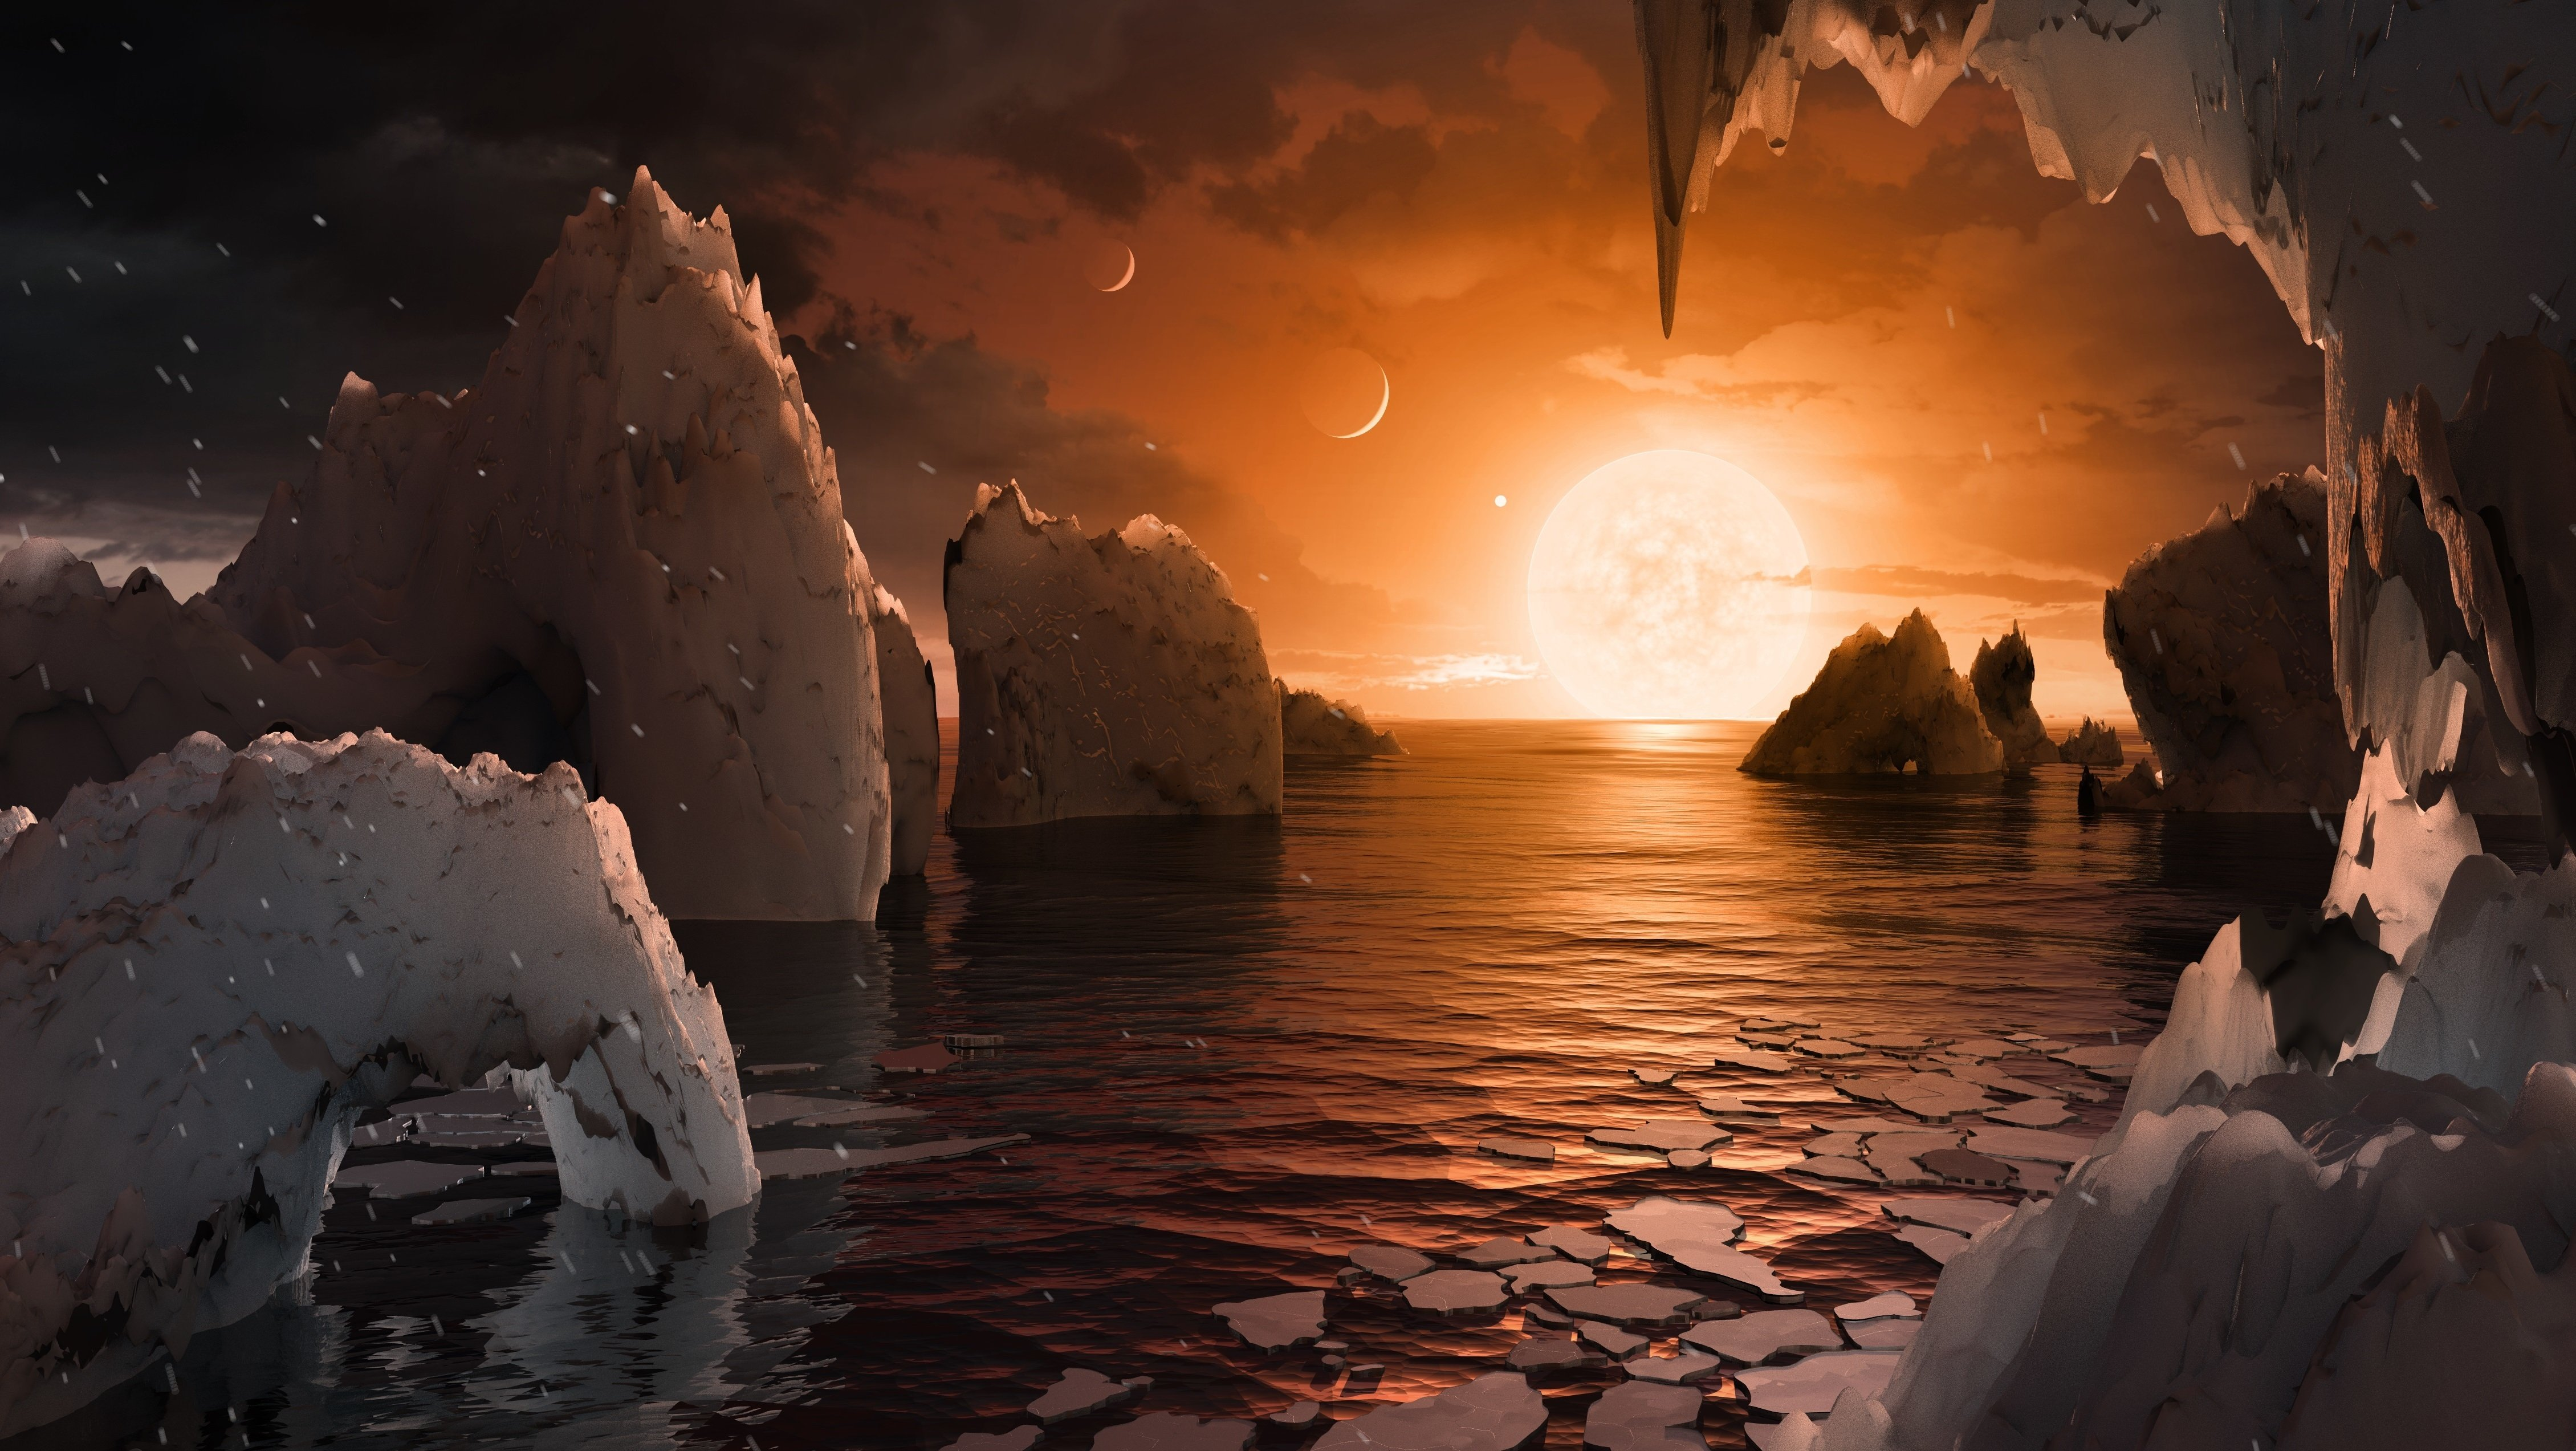 Exoplanet Sunrise wallpaper